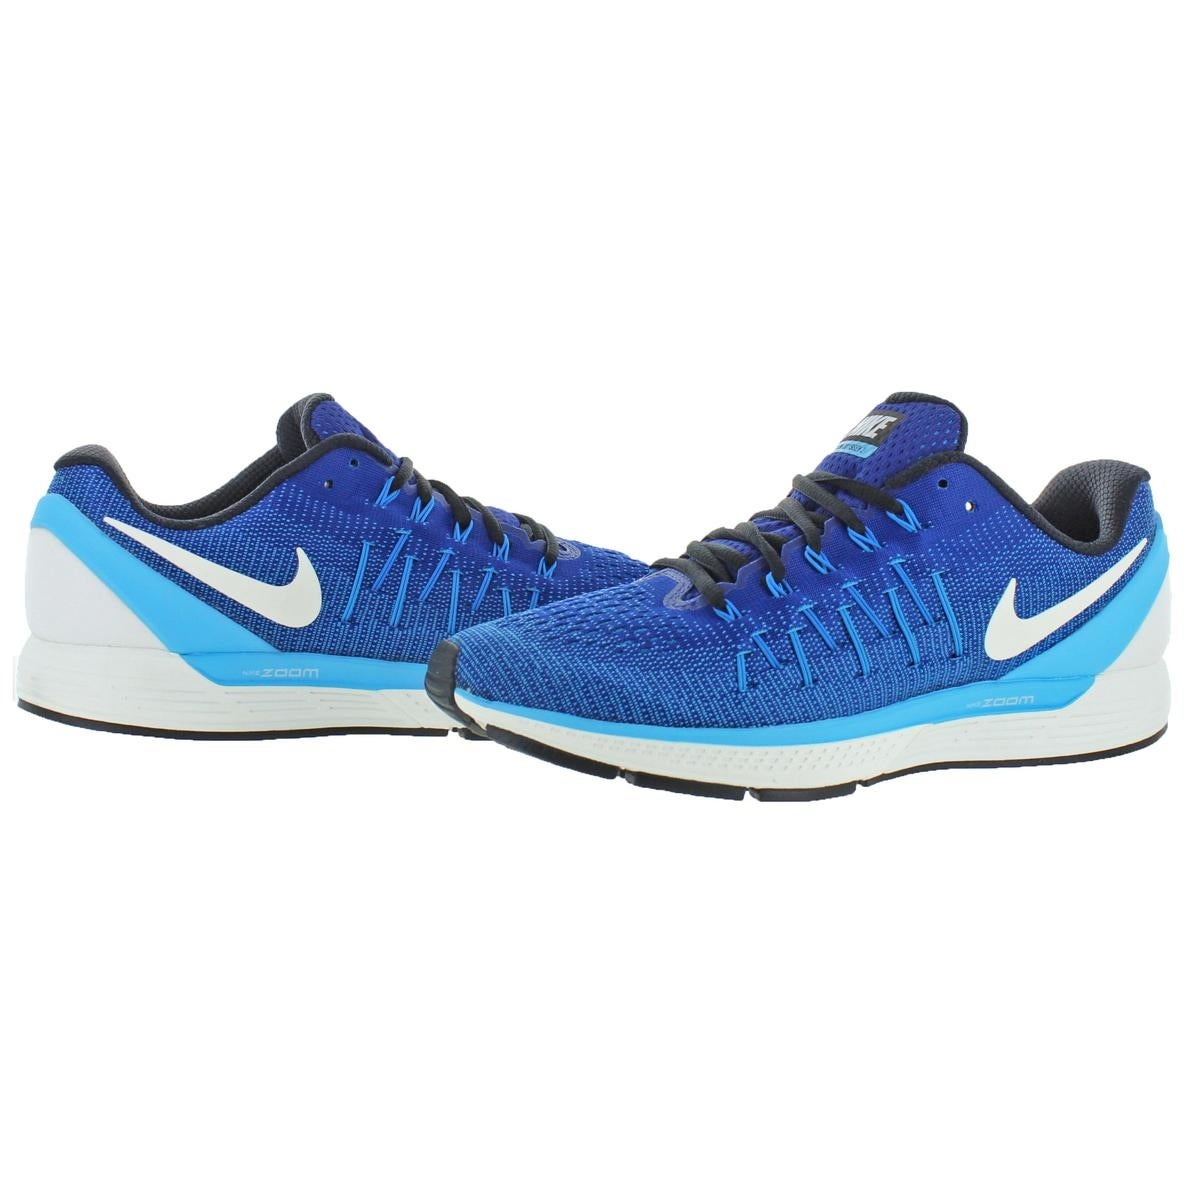 49ccc3f9e06c Shop Nike Mens Air Zoom Odyssey Running Shoes Run Easy Training - Free  Shipping Today - Overstock - 22132724